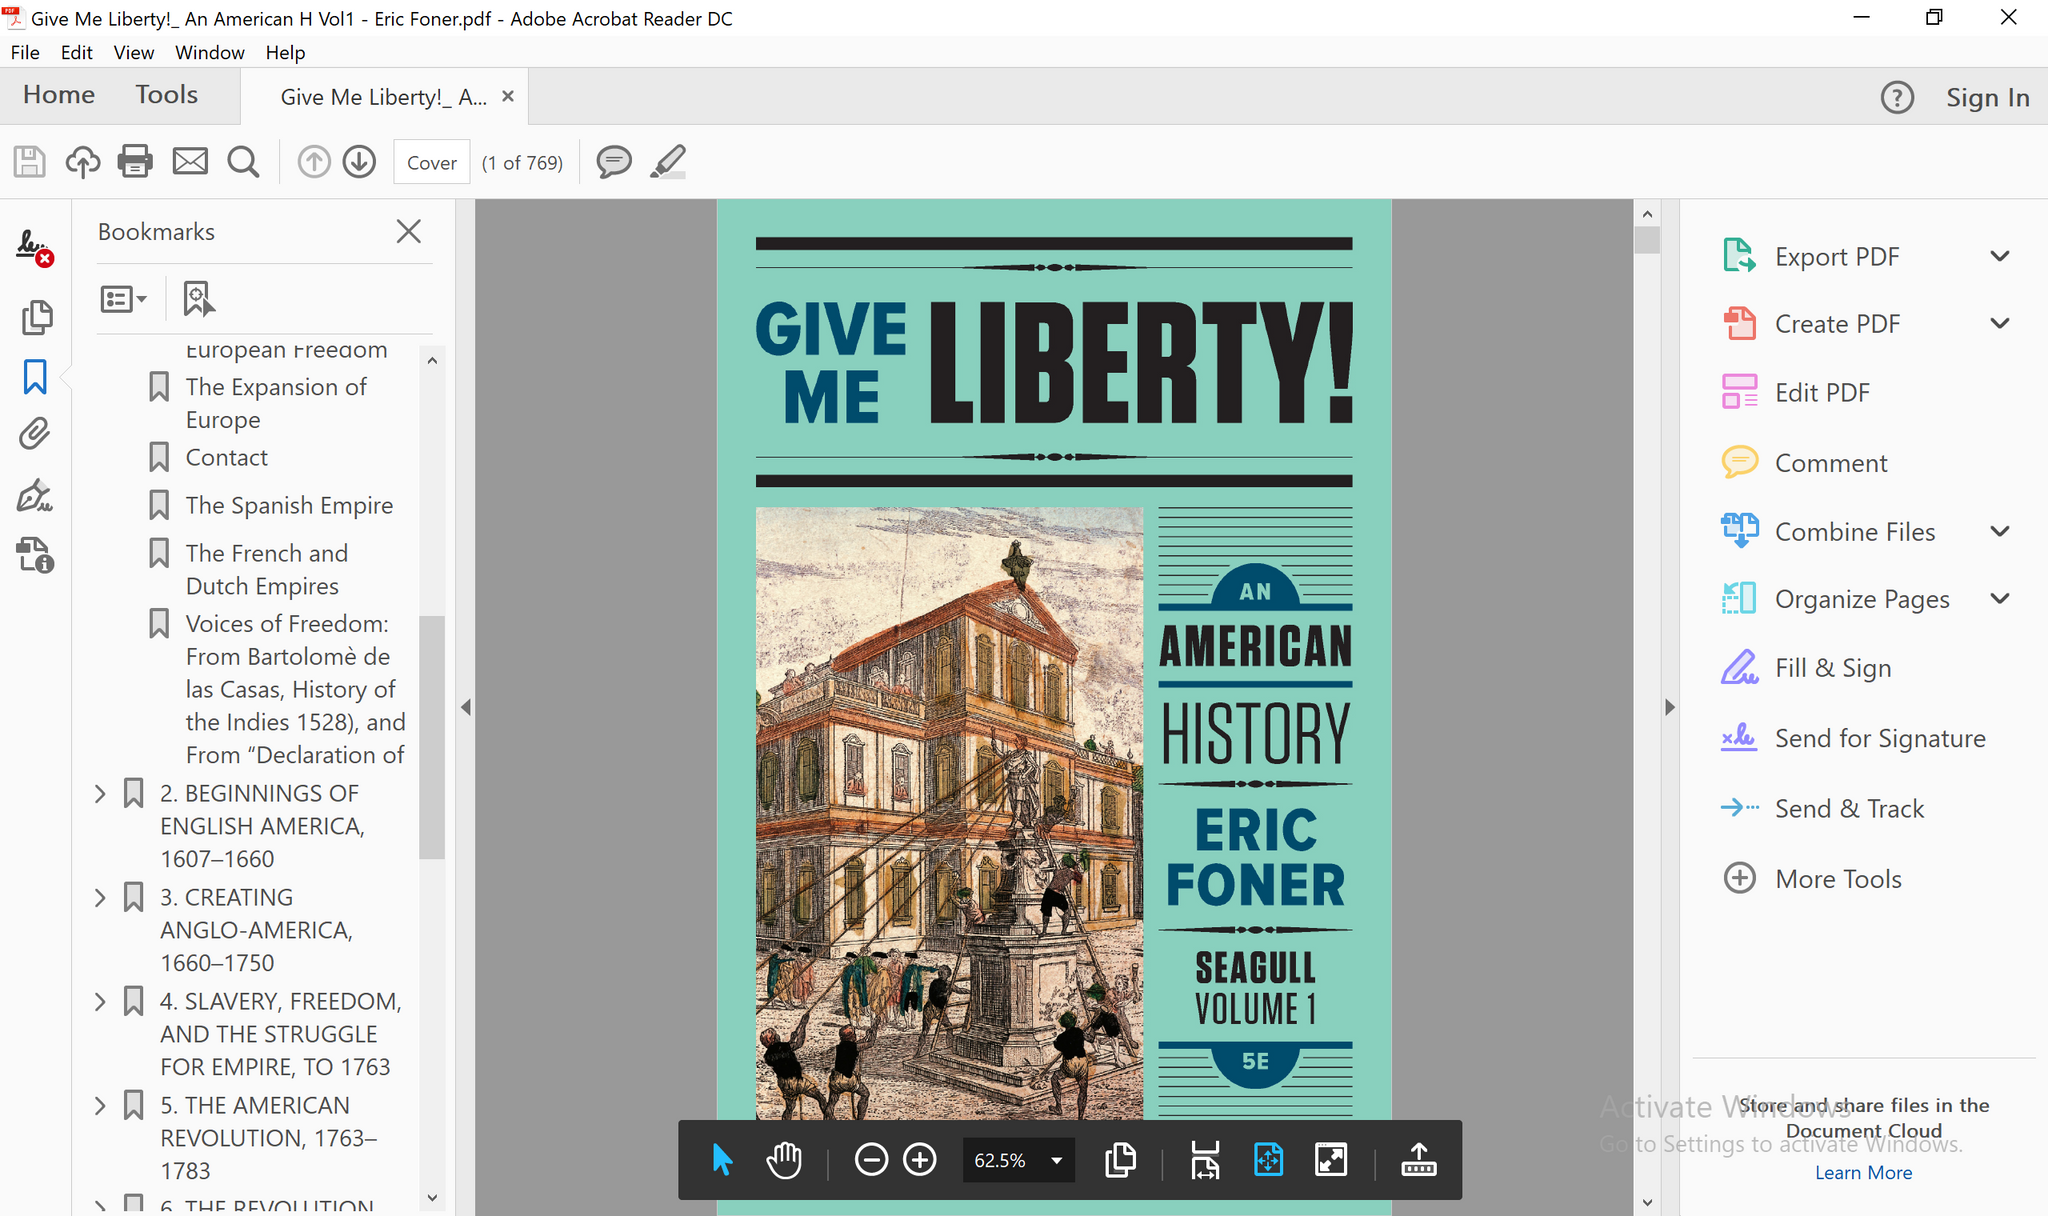 Give me liberty an american history seagull 5th edition vol 1 1 pdf give me liberty an american history seagull 5th edition vol 1 pdf fandeluxe Image collections